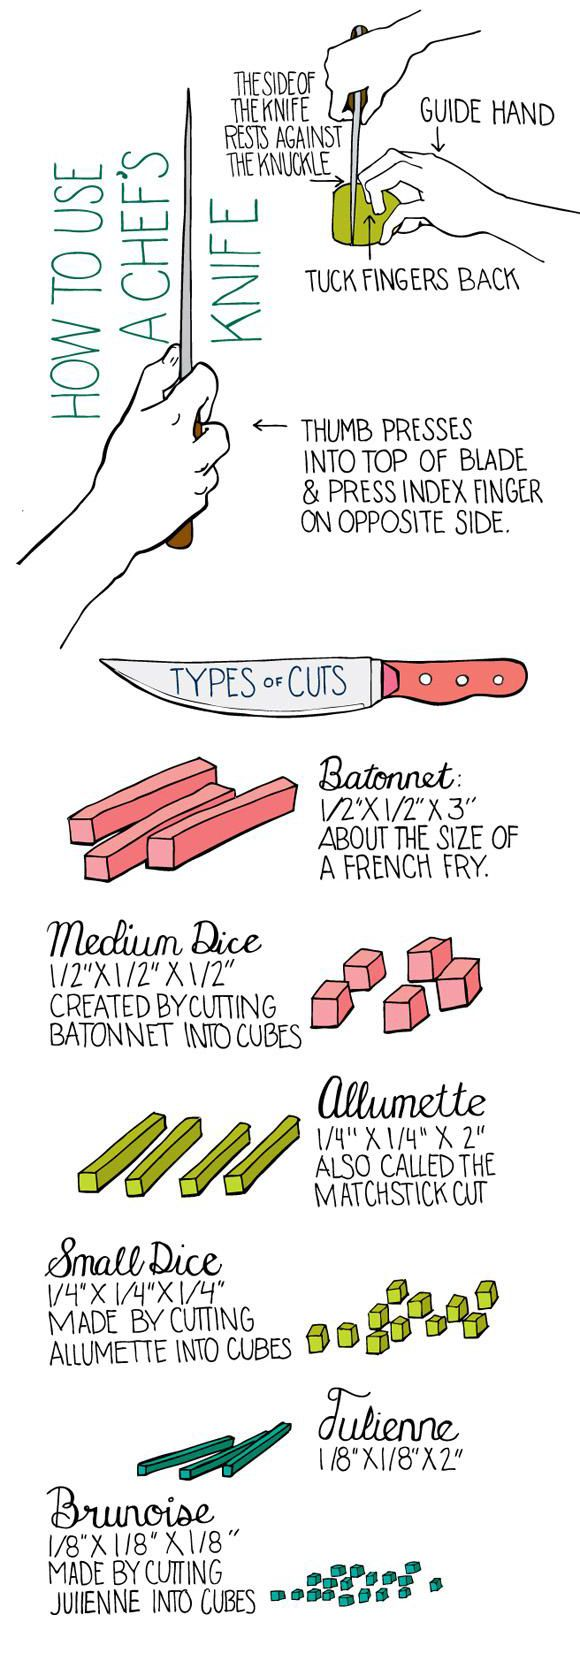 70 best culinary/knife skills images on Pinterest | Knife making ...